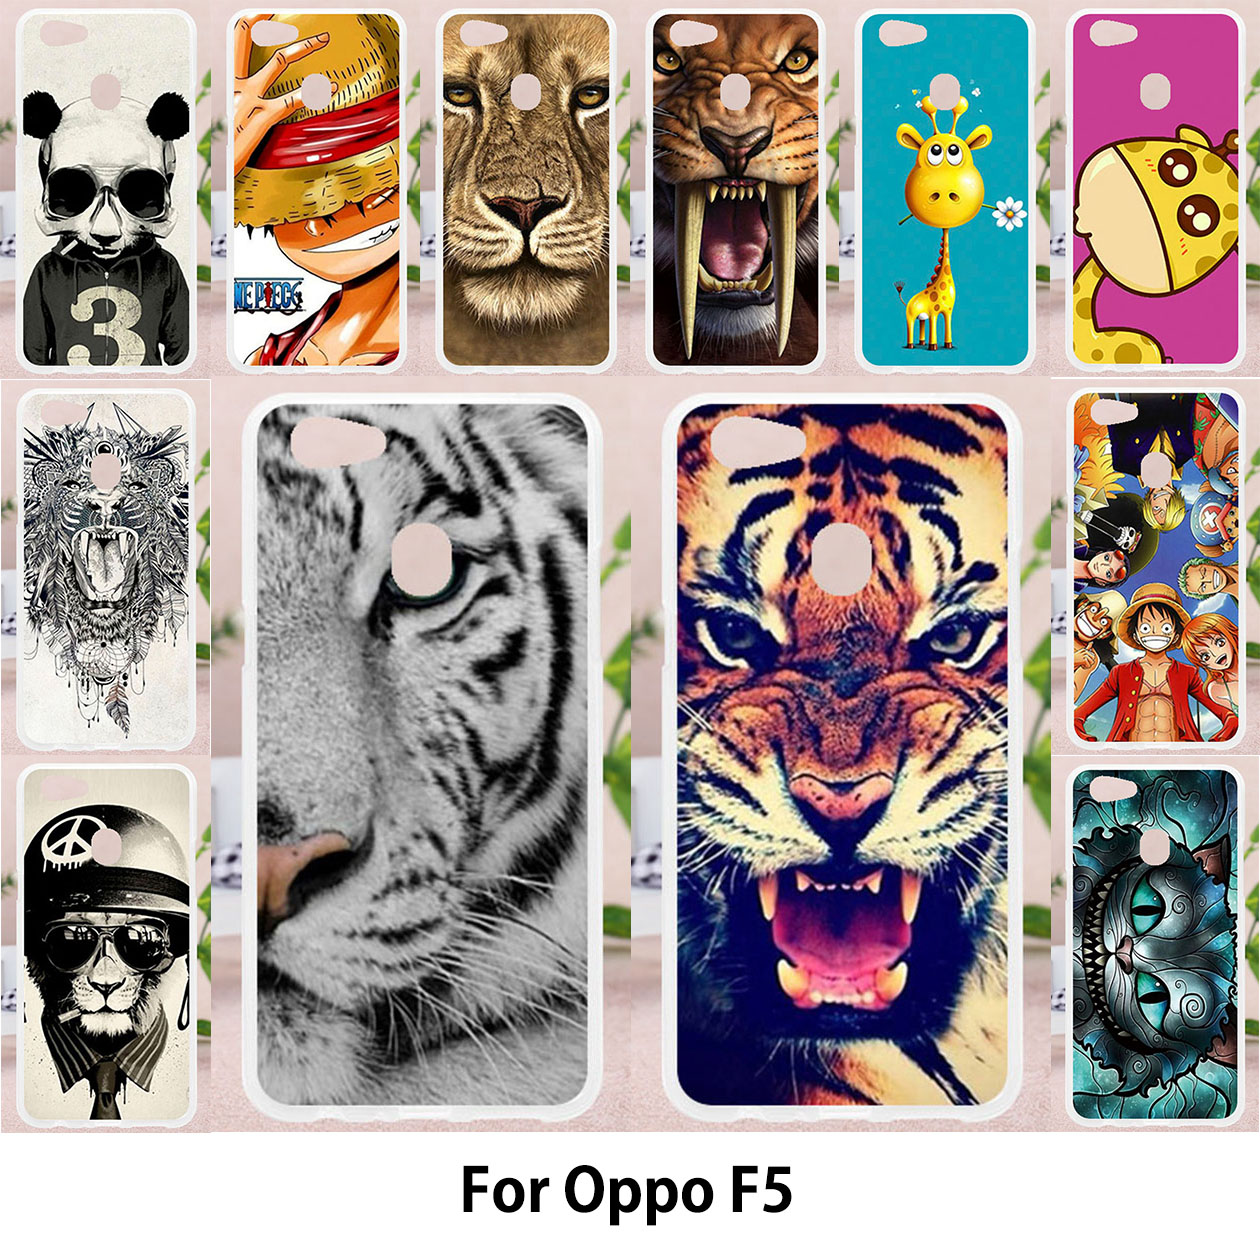 TAOYUNXI For OPPO F5 Case Silicon TPU Soft Back Covers OPPO F5 Cases Cute Animal Phone Cover Painting Tiger Cat Patterned Shell